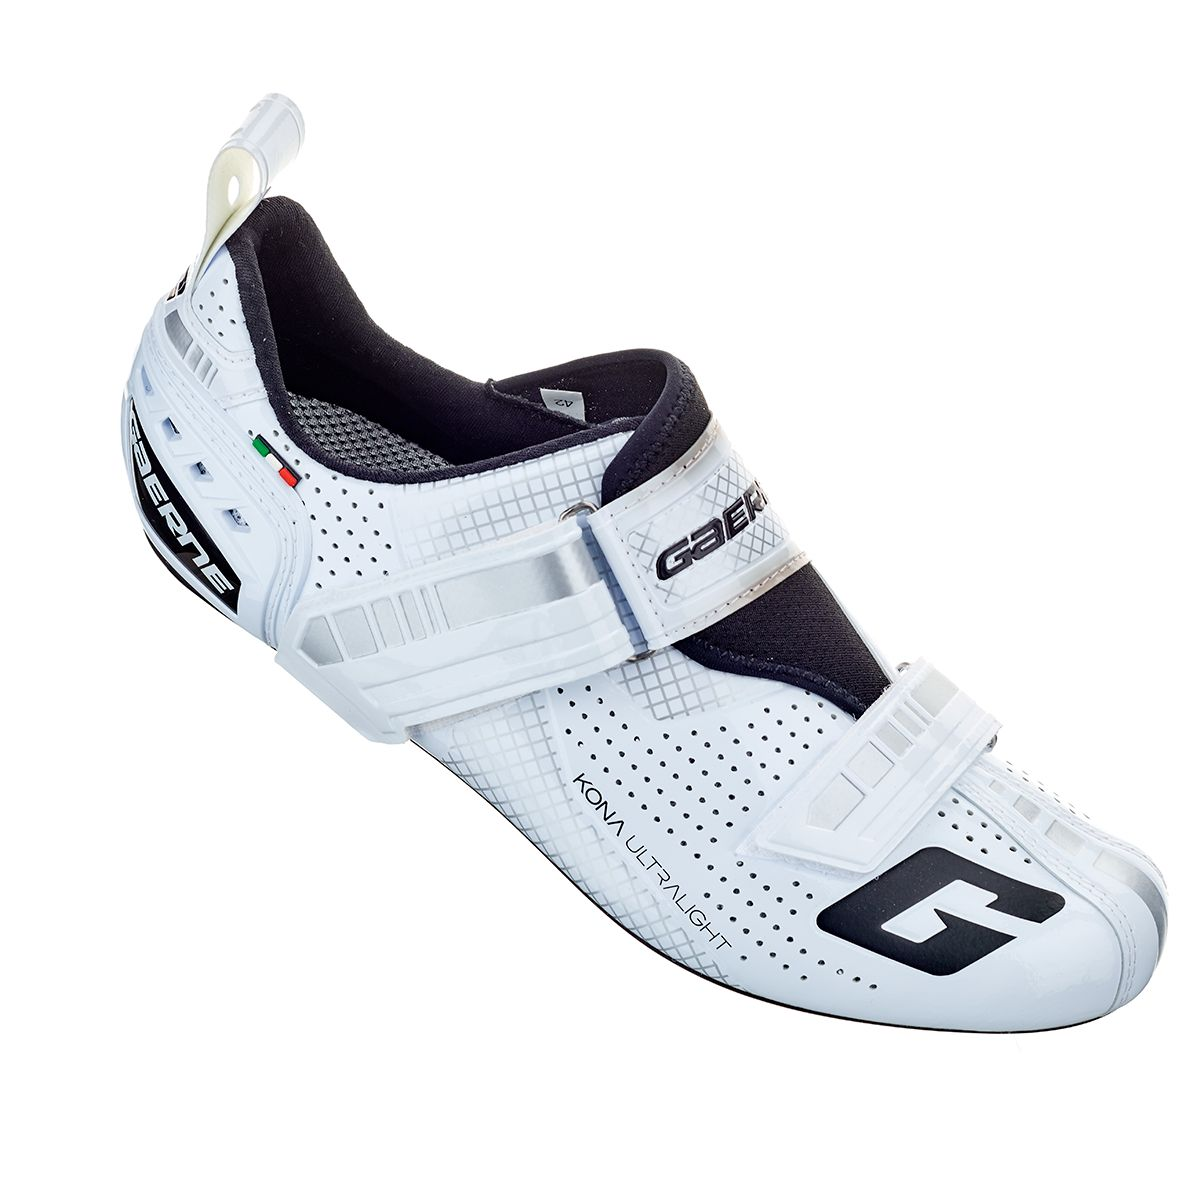 GAERNE G.KONA Triathlonschuhe (B-Ware) | Shoes and overlays